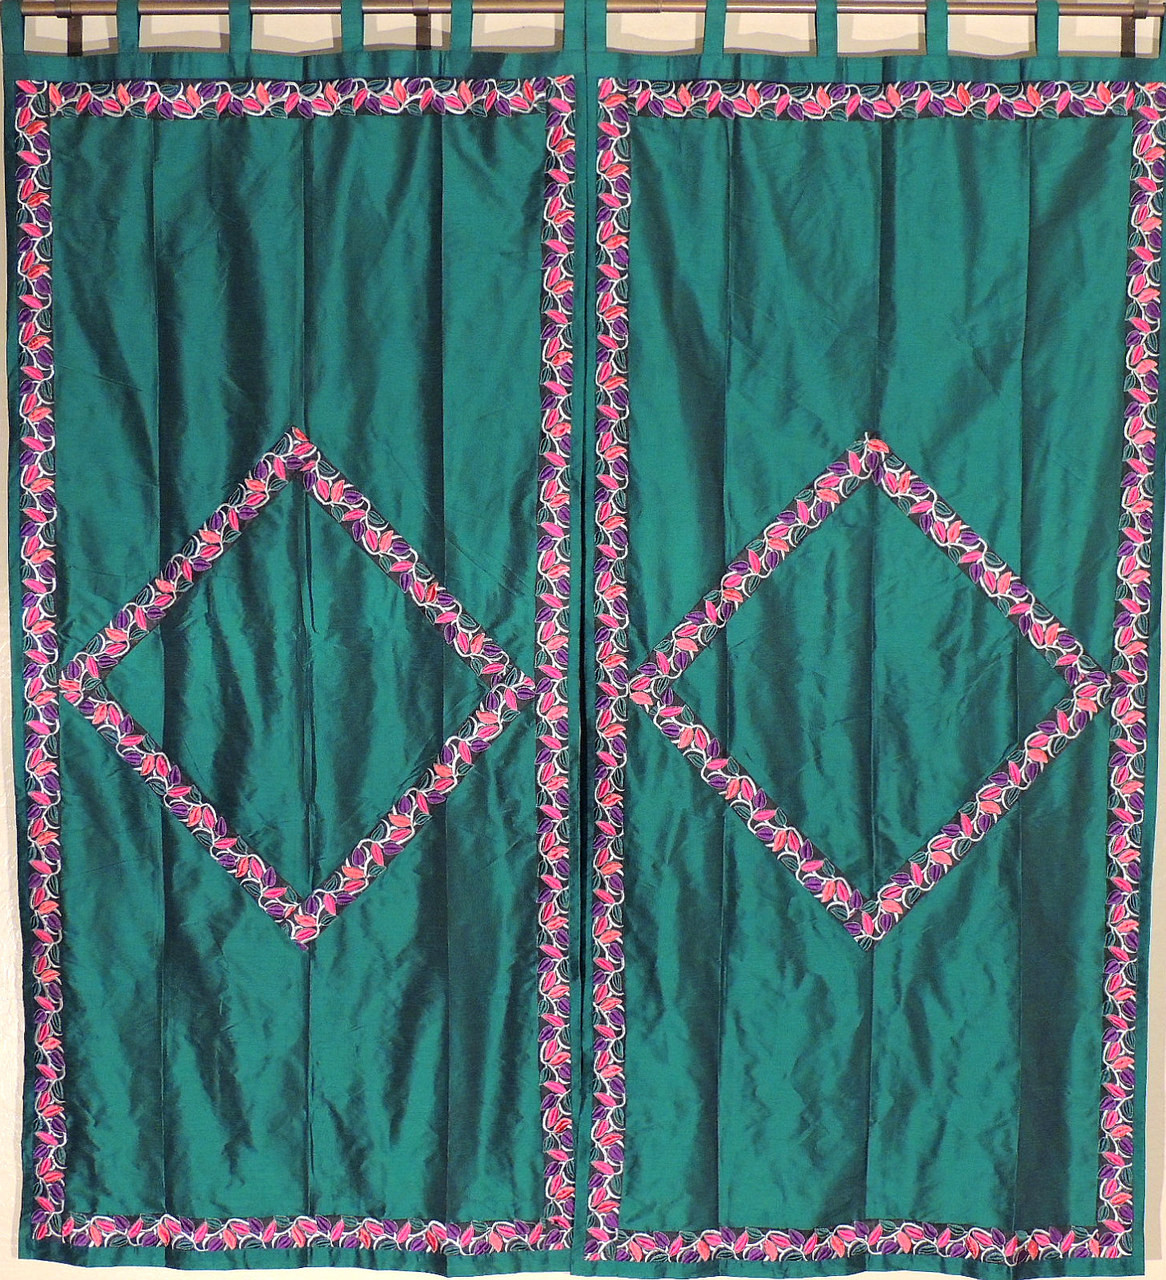 Green indian curtains - Green Trellis Fine Embroidered Curtains 2 Elegant Indian Window Treatments Panels 82